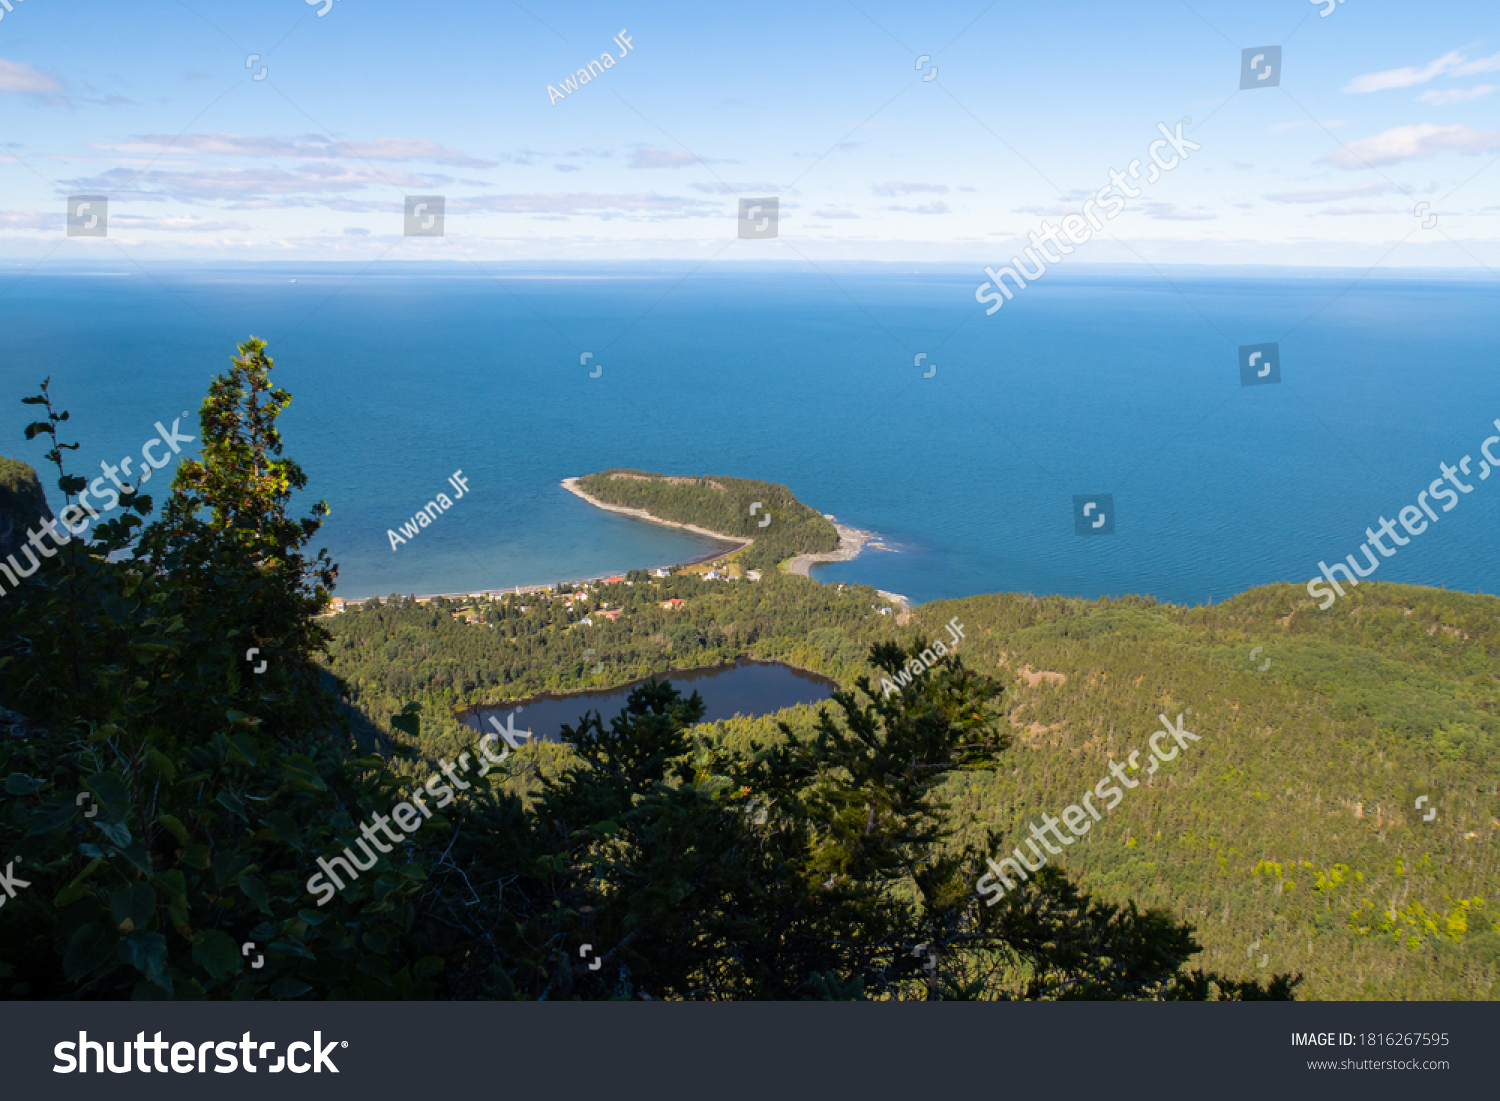 stock-photo-landscape-view-from-the-top-